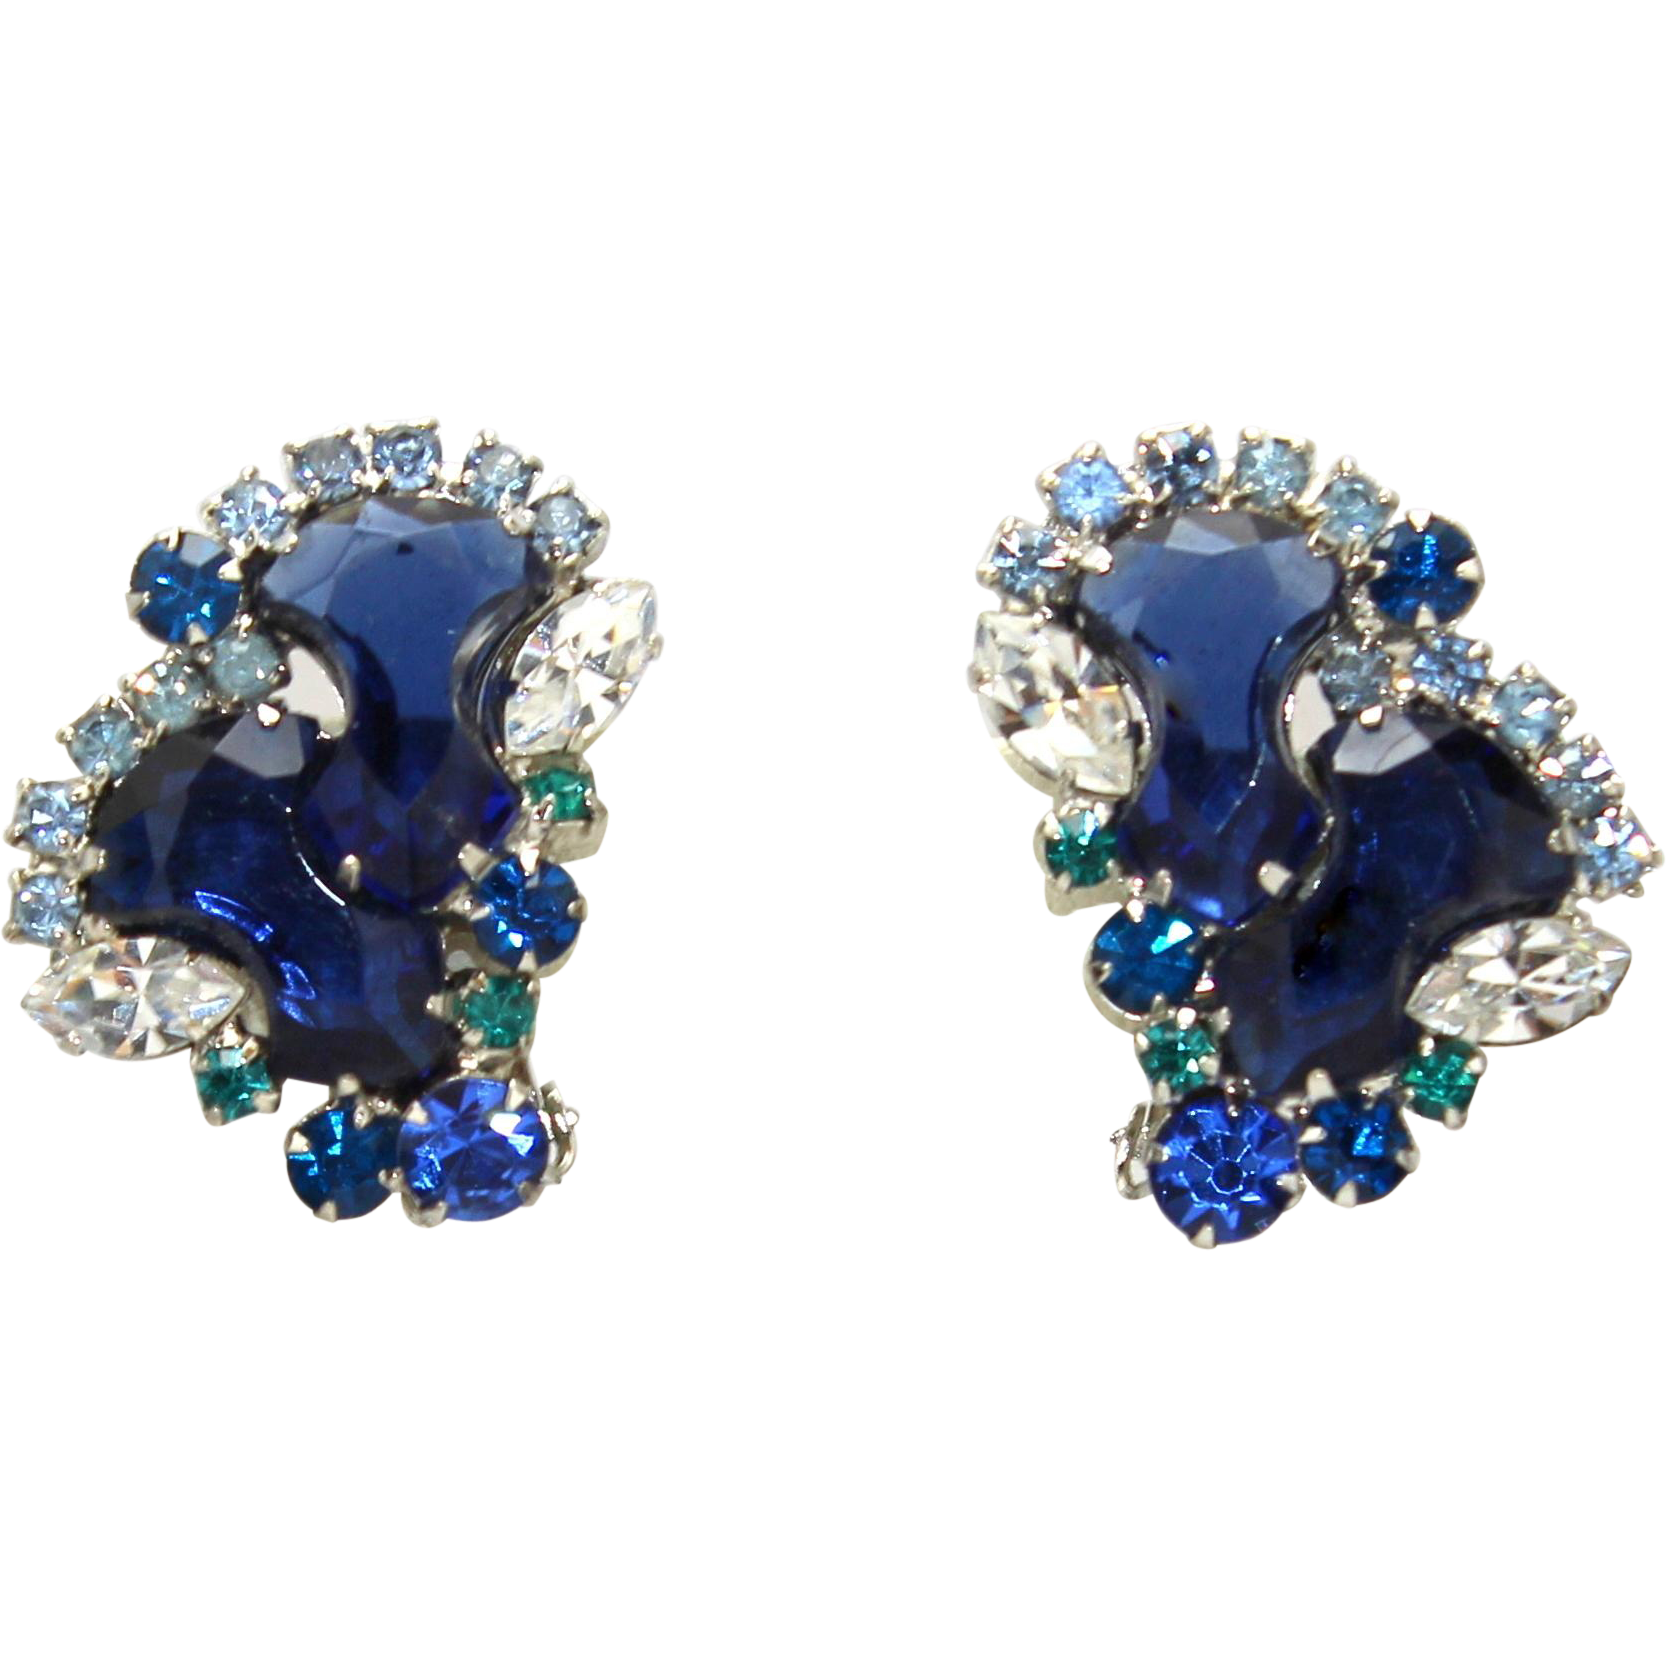 Vintage Juliana Blue Anchor Stone Teal Rhinestone Earrings